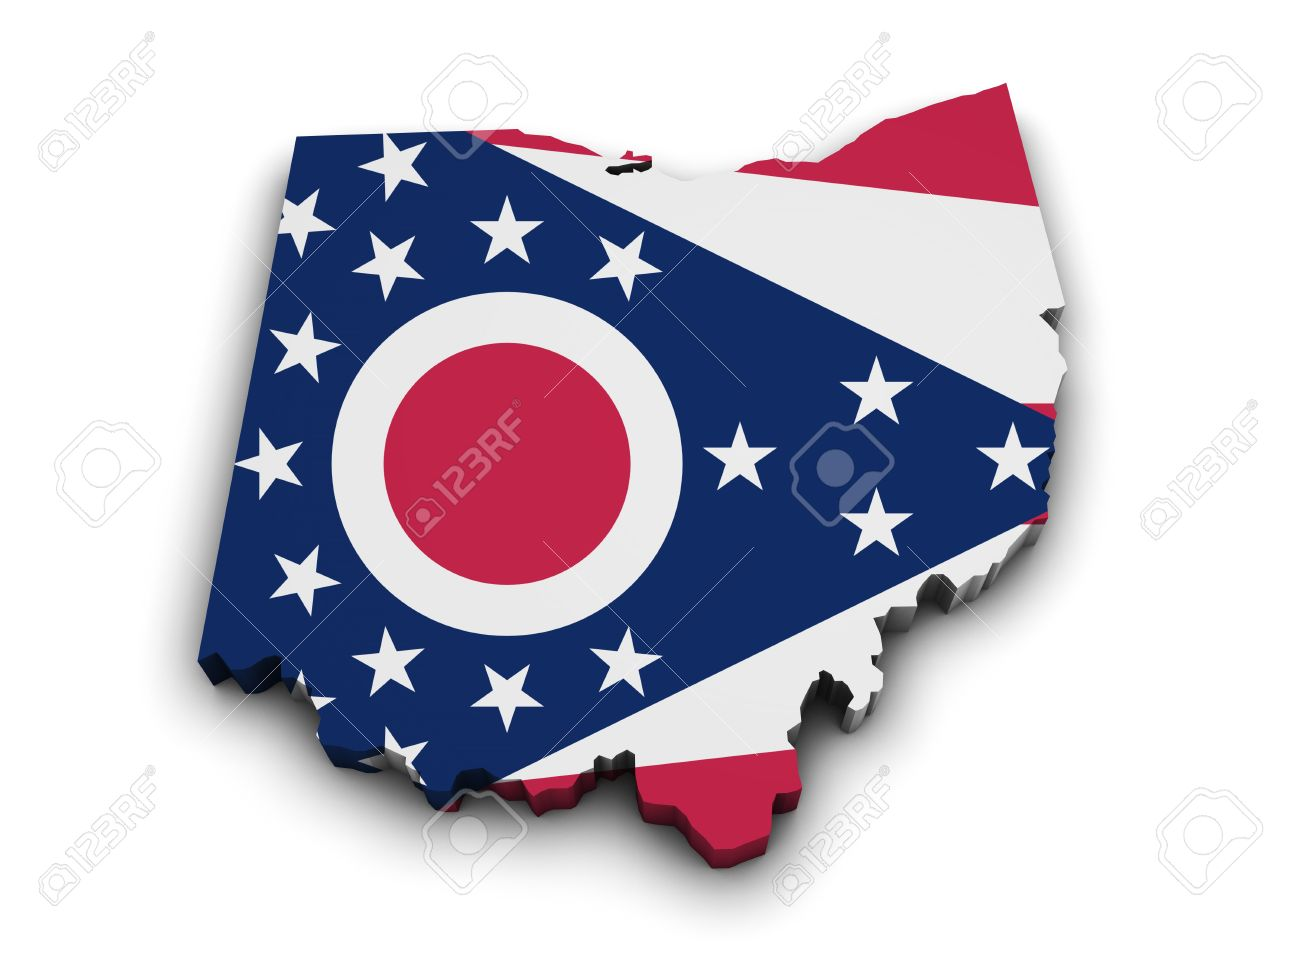 Shape 3d Of Ohio State Map With Flag Isolated On White Background.